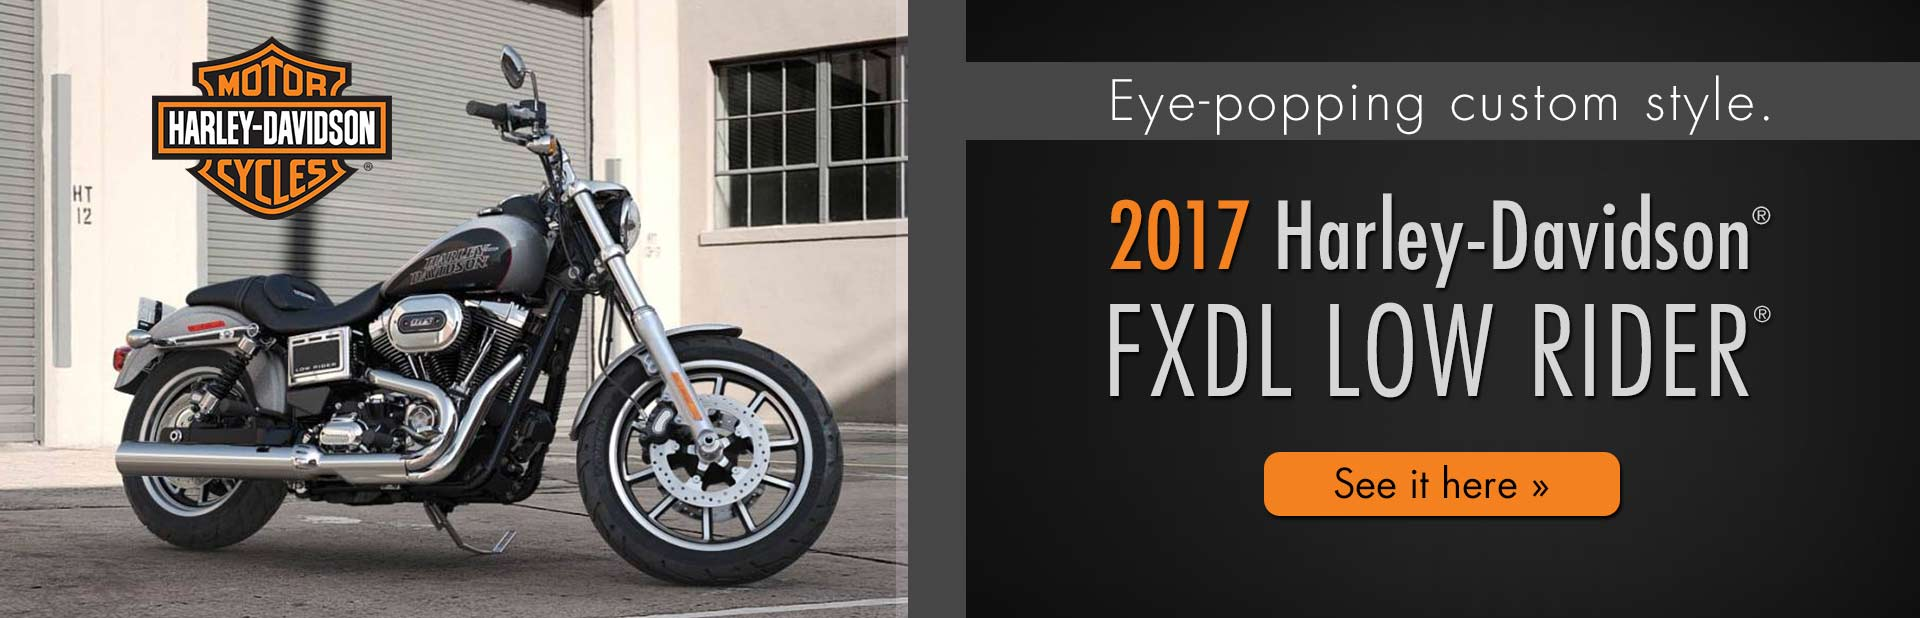 2017 Harley-Davidson® FXDL Low Rider®: Click here to view the model.